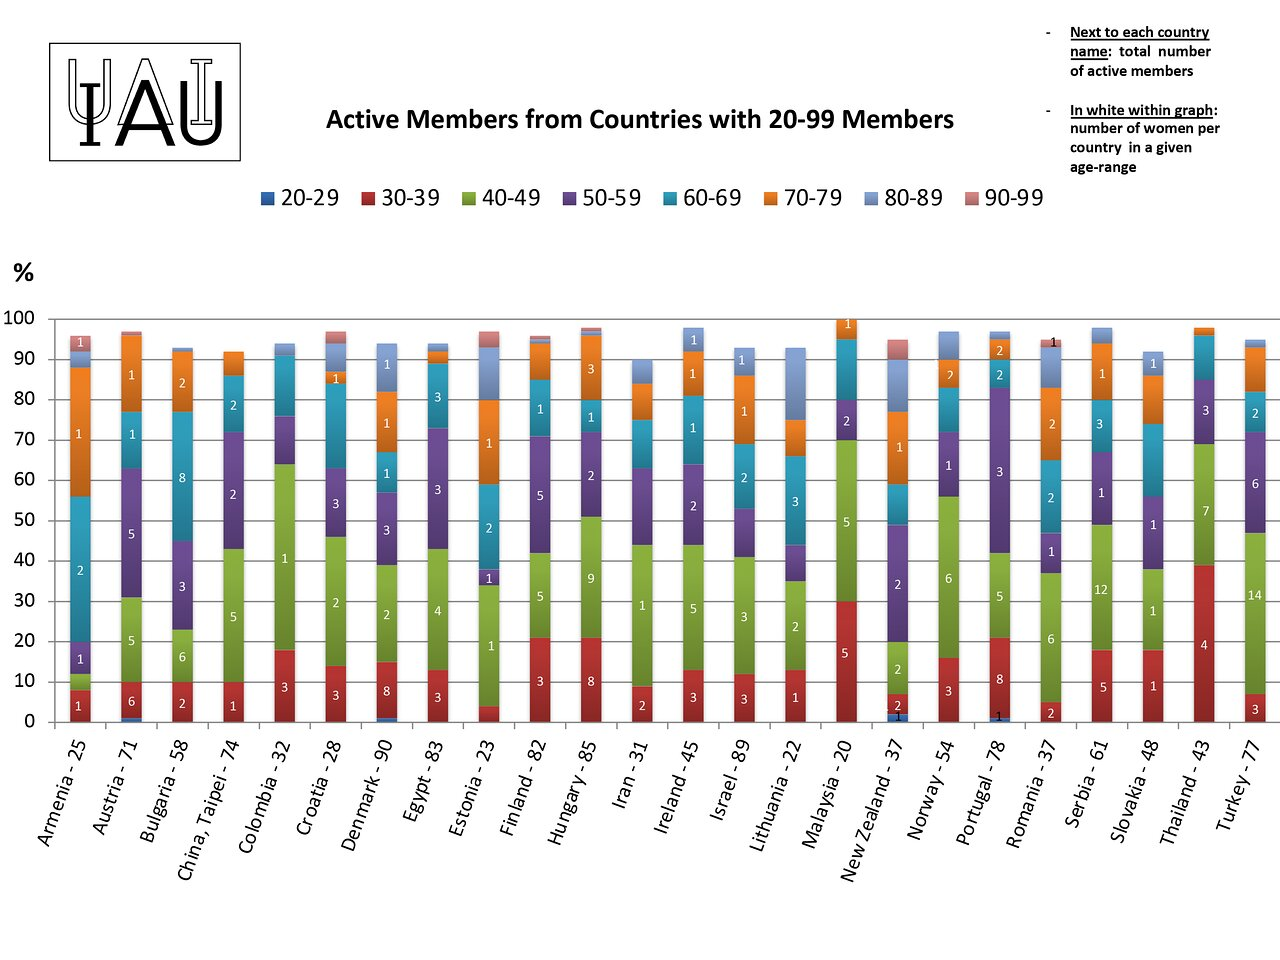 Active members from countries with 20-99 members